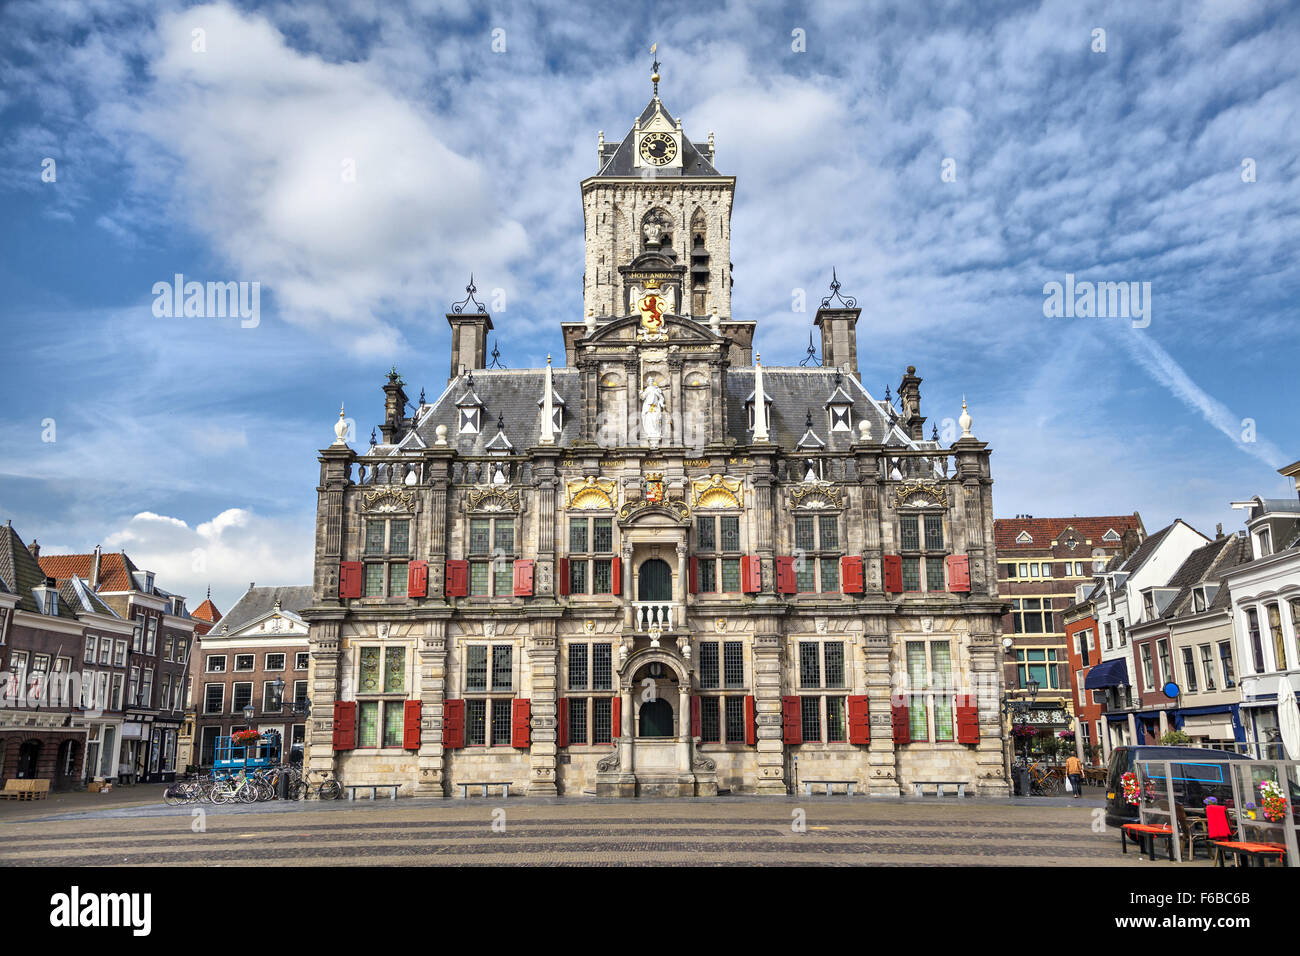 The Renaissance style facade of the Delft city hall building, the Netherlands. - Stock Image